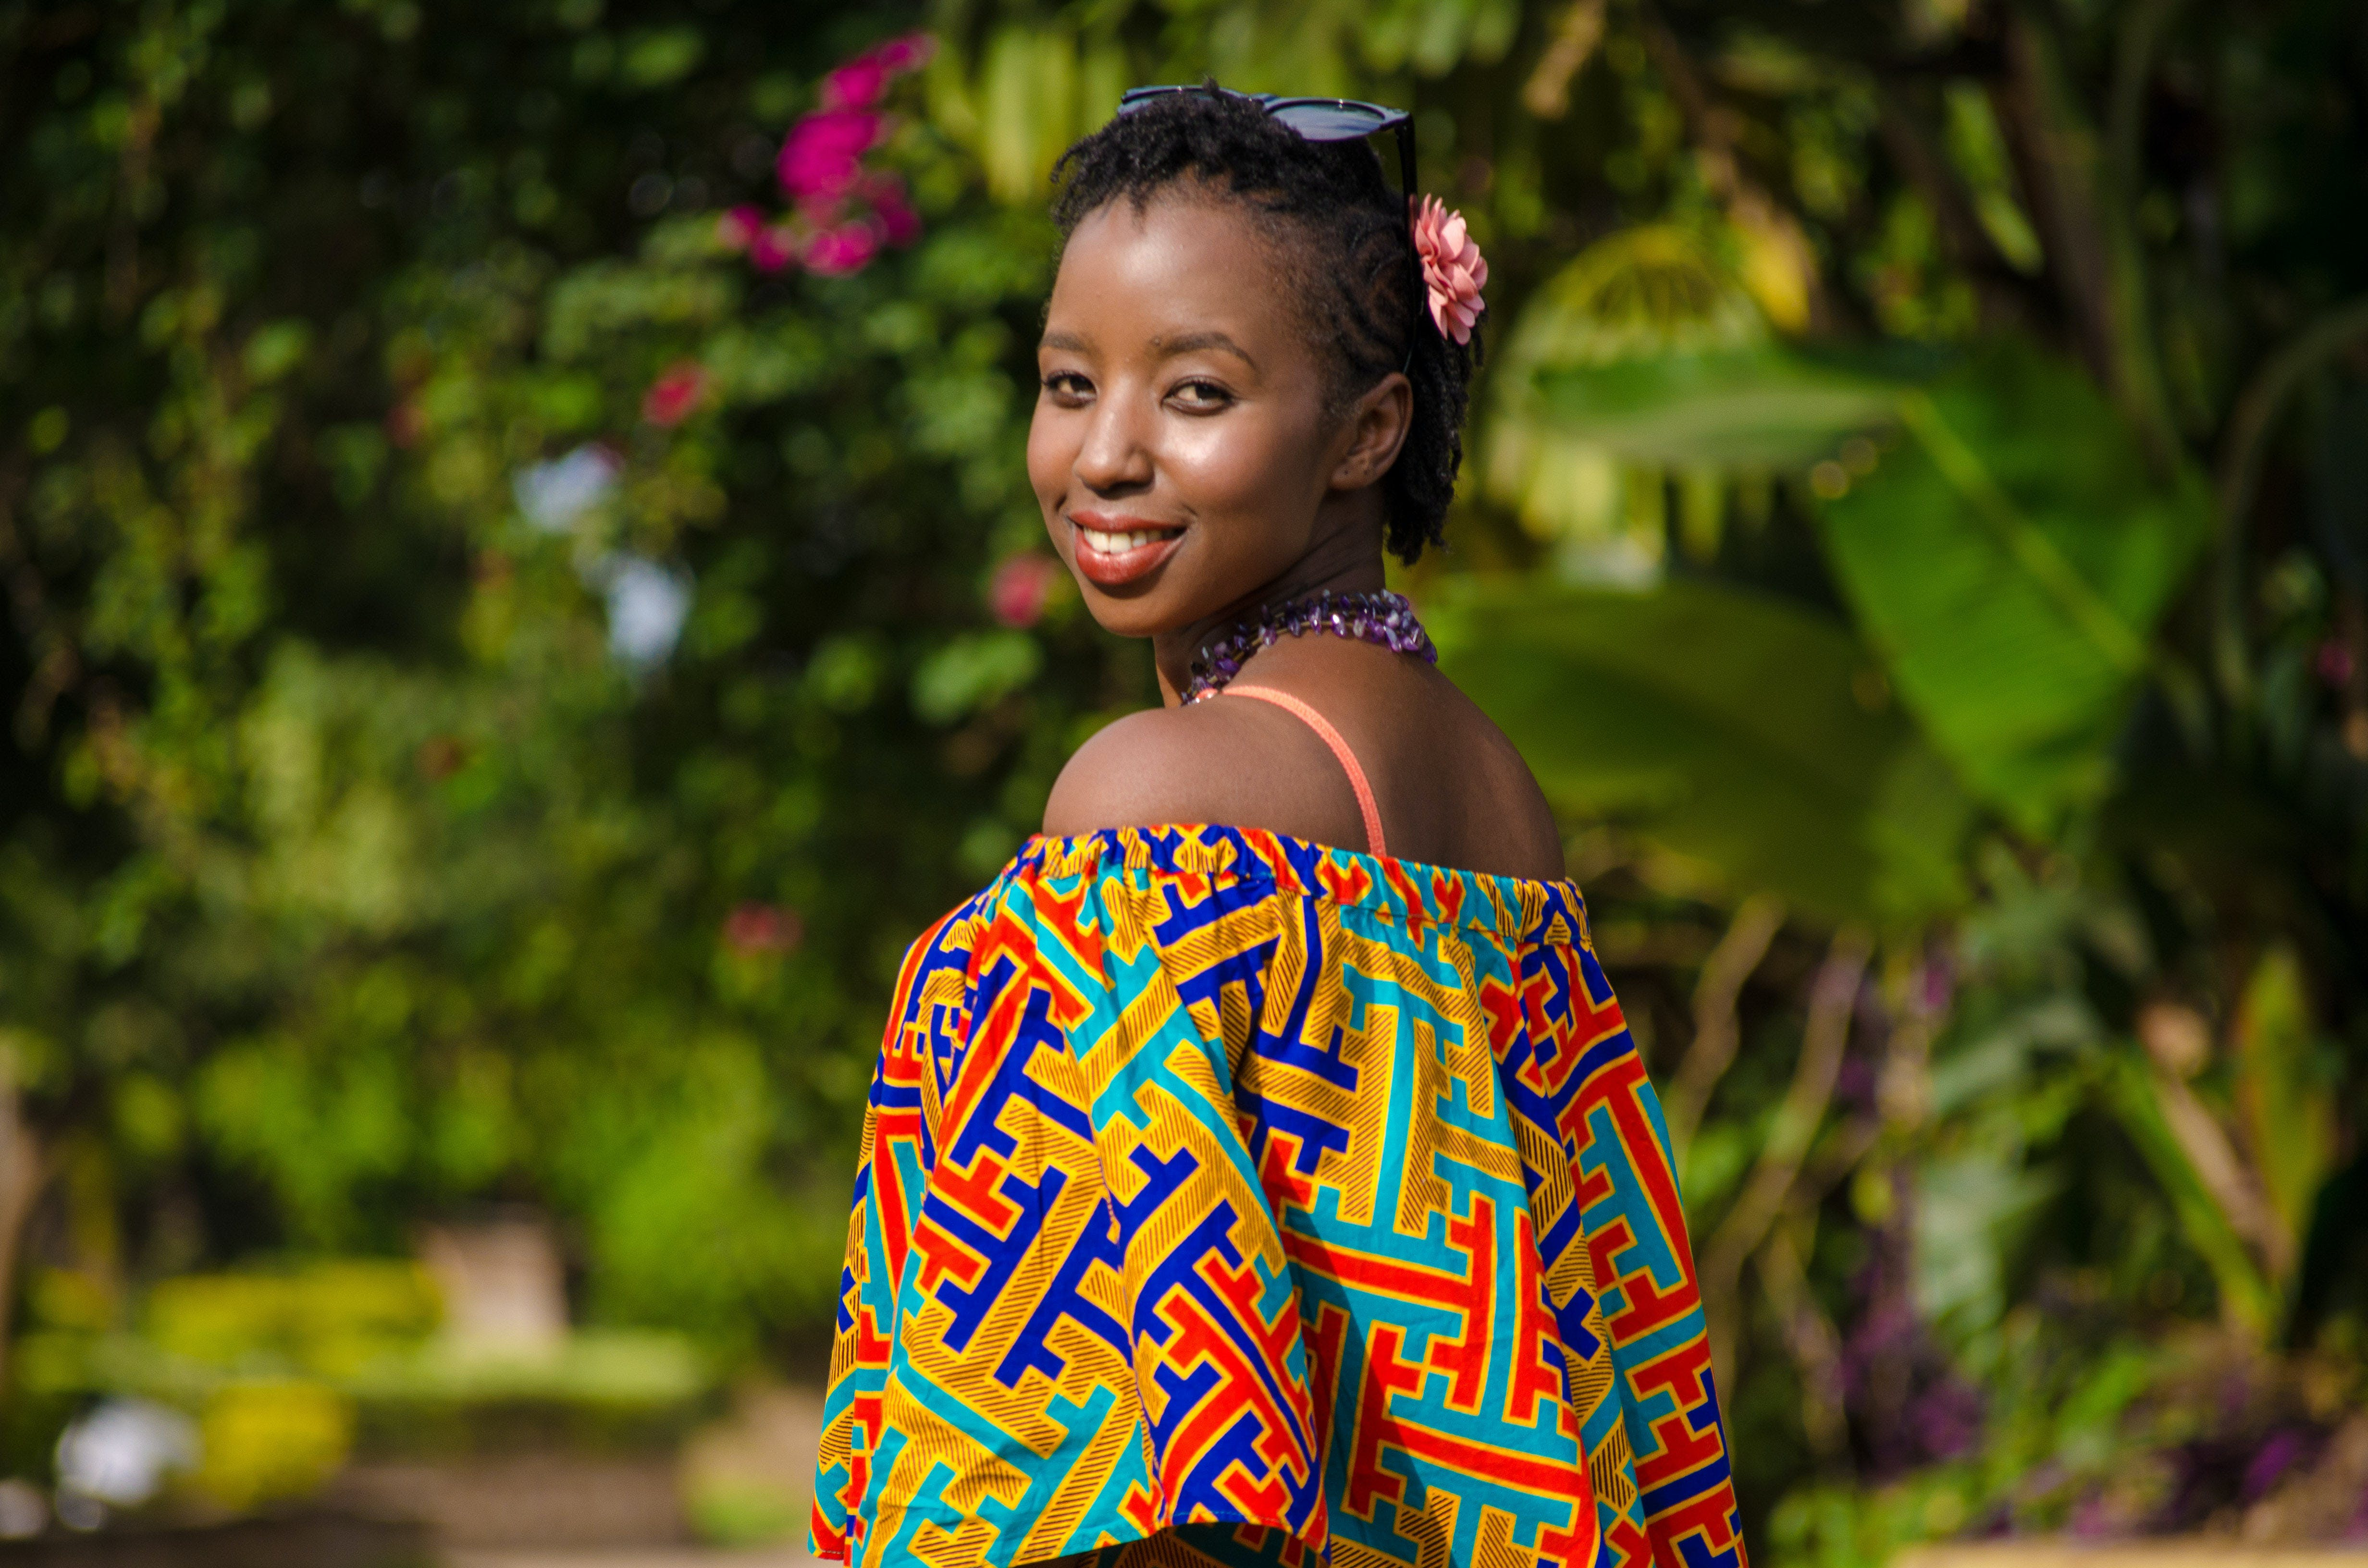 Shallow Focus Photography of Woman Wearing Multicolored Off-shoulder Top